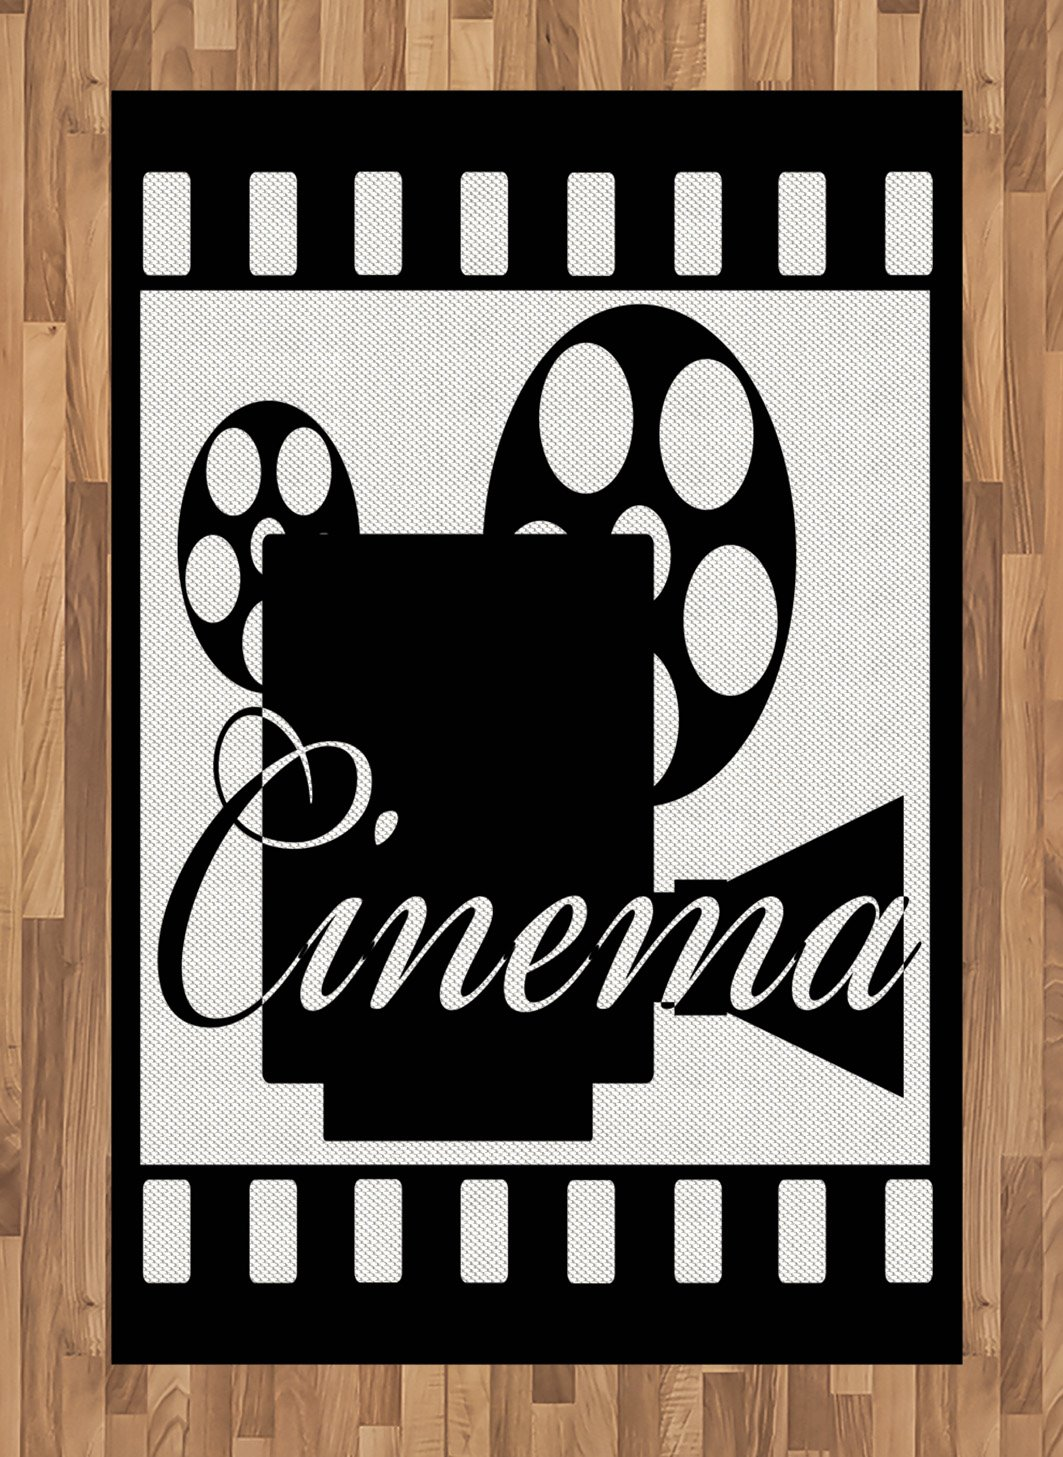 Ambesonne Movie Theater Area Rug, Monochrome Cinema Projector Inside a Strip Frame Abstract Geometric Pattern, Flat Woven Accent Rug for Living Room Bedroom Dining Room, 4 X 5.7 FT, Black White